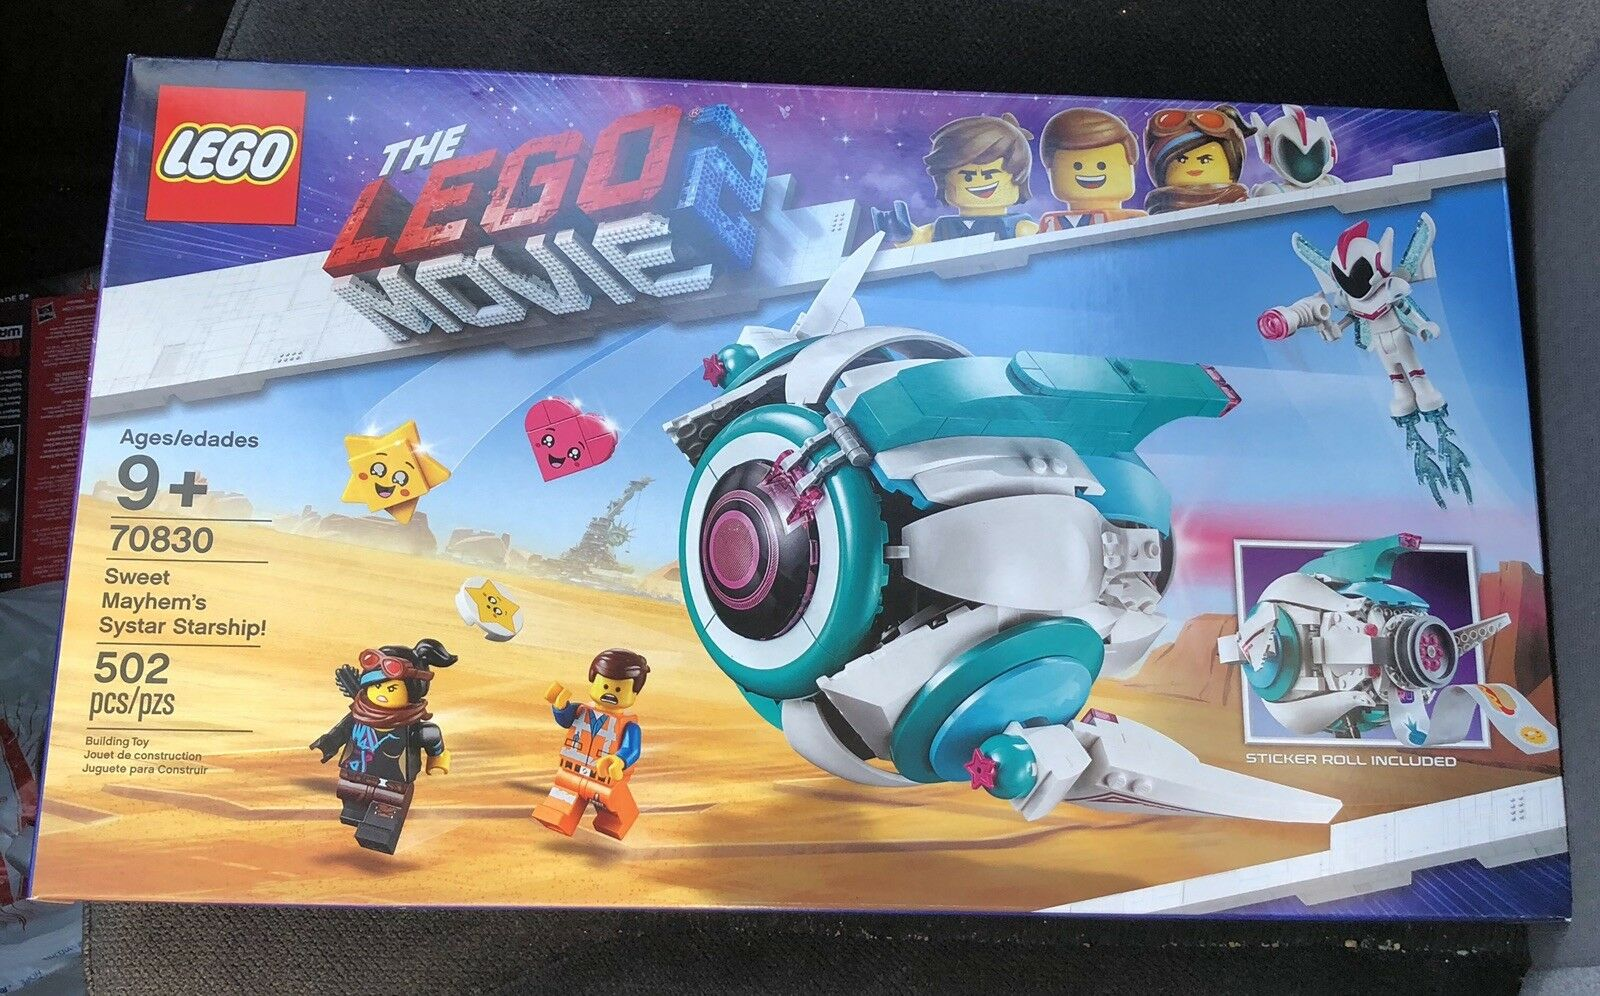 LEGO The Lego Movie 2 Sweet Mayhem 'Systar Starship   502 pièce (70830)  service attentionné